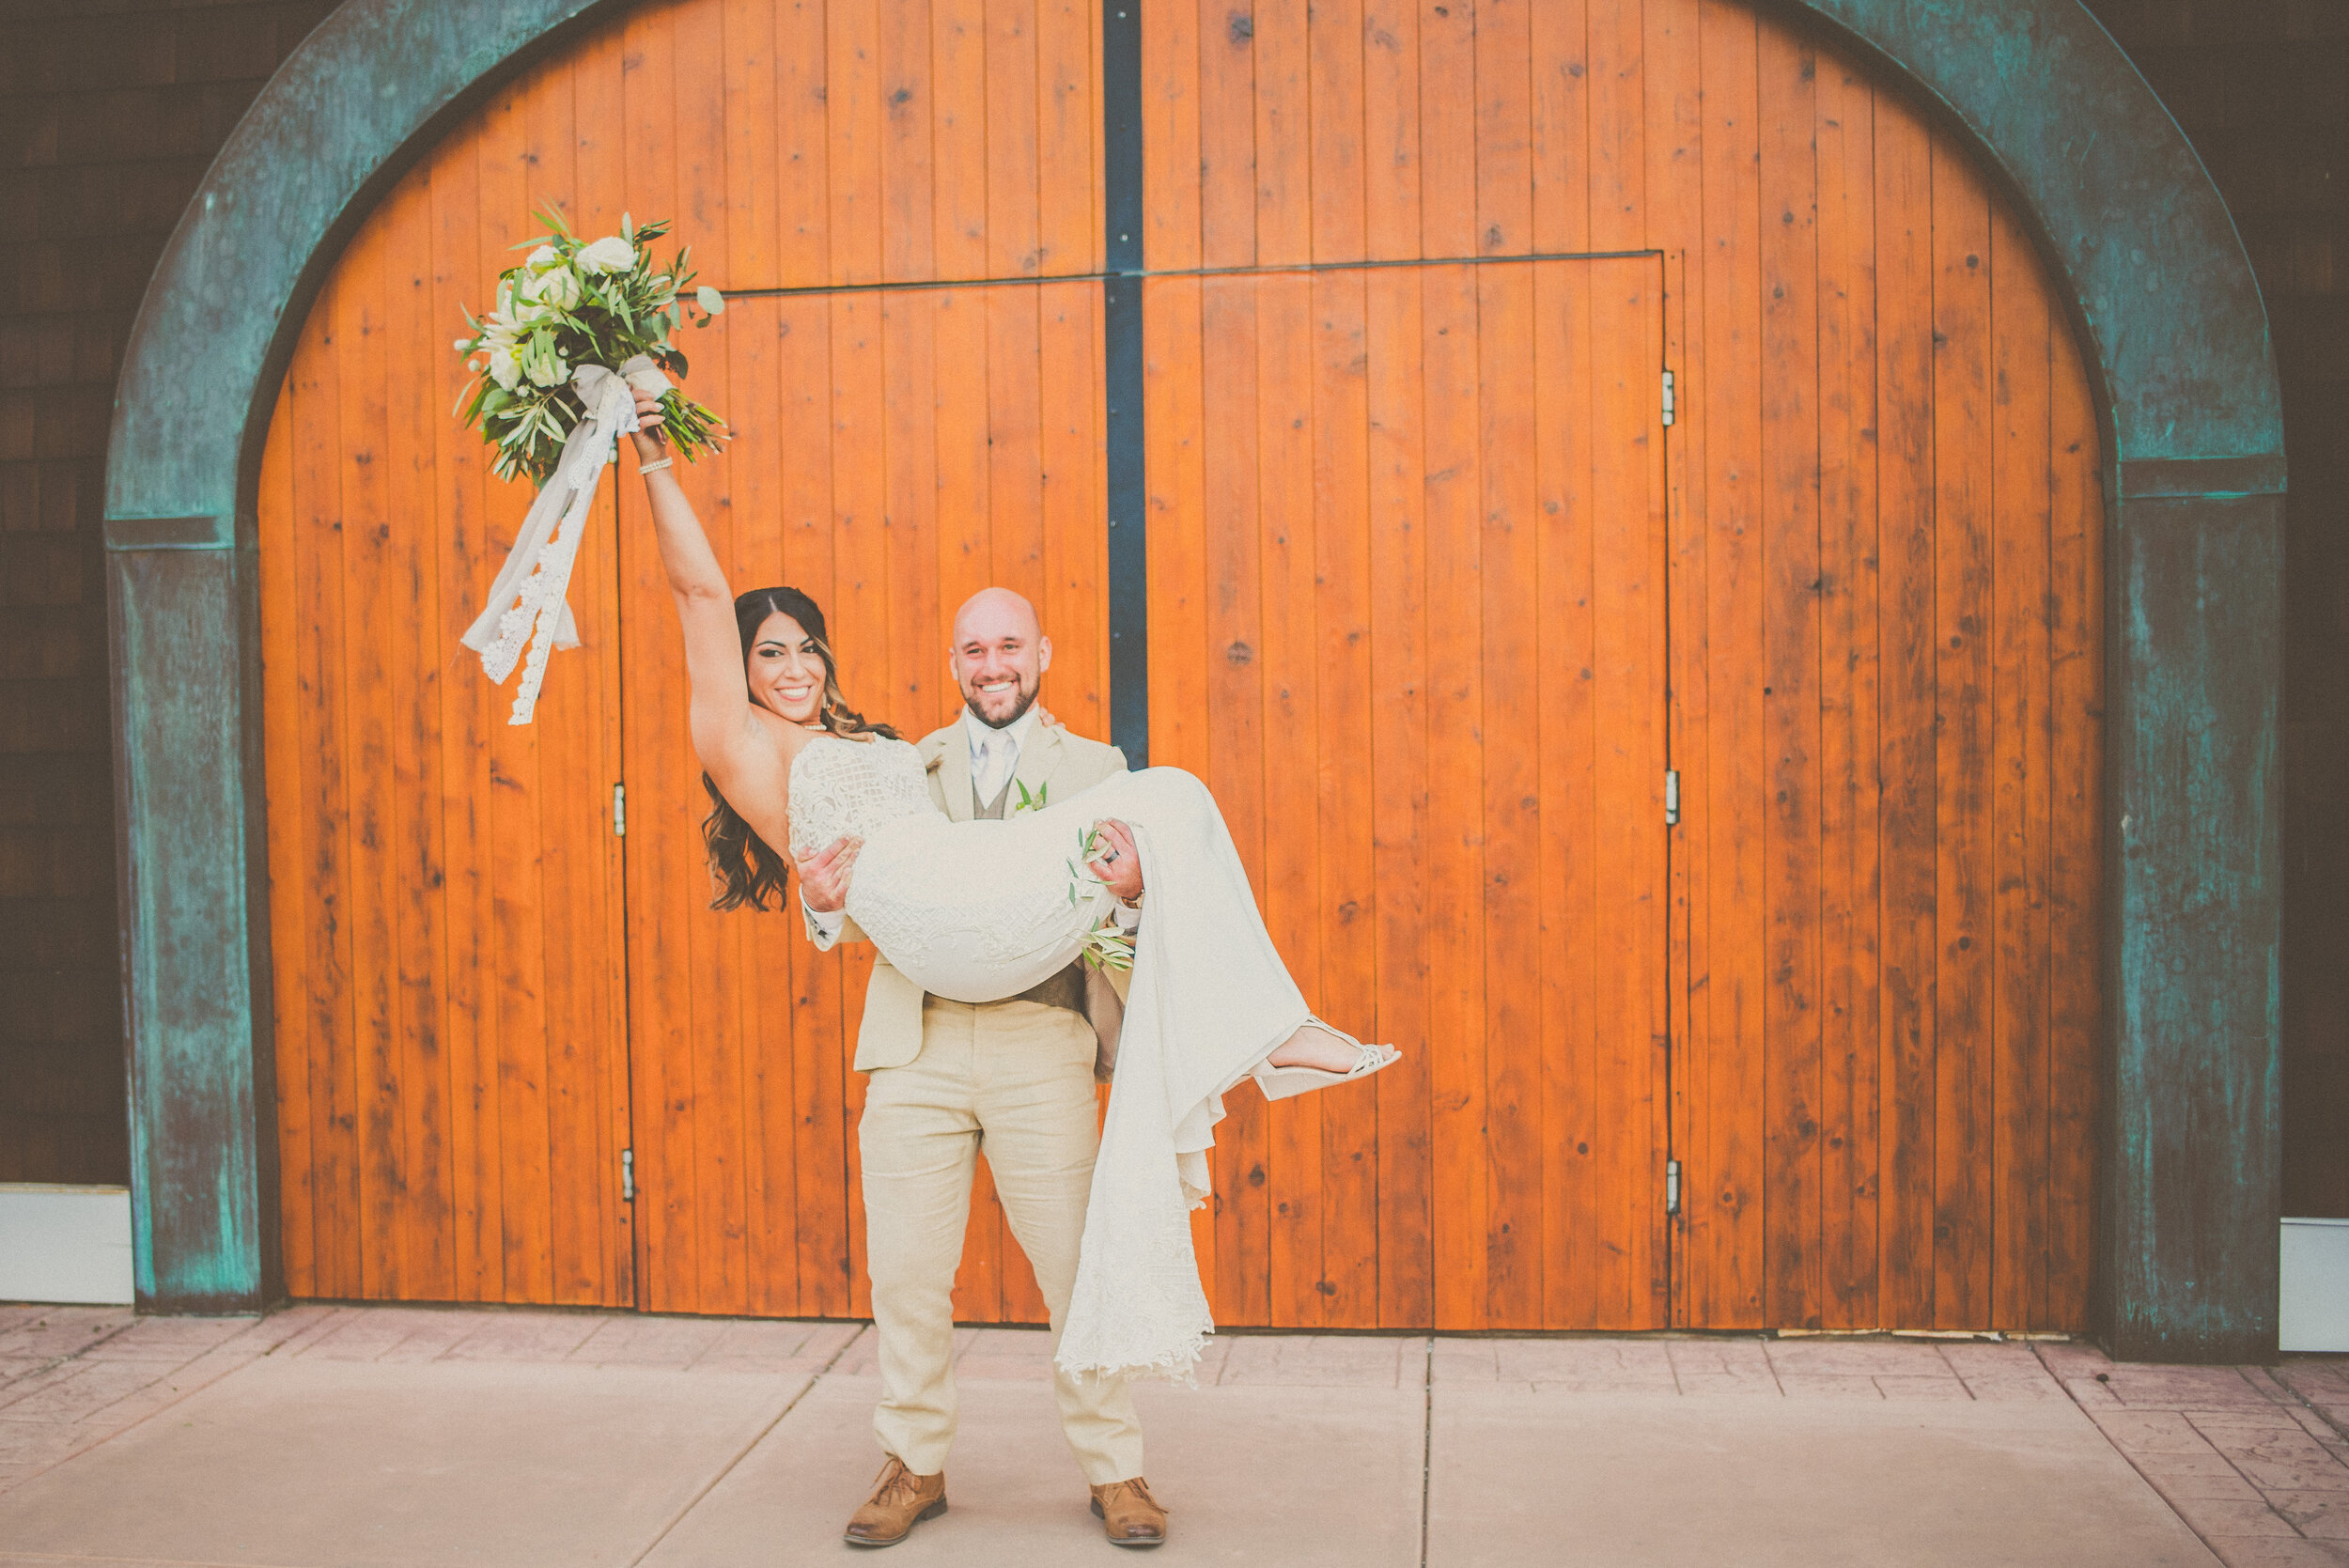 Motter Wedding - Bride & Groom Portraits-53.jpg